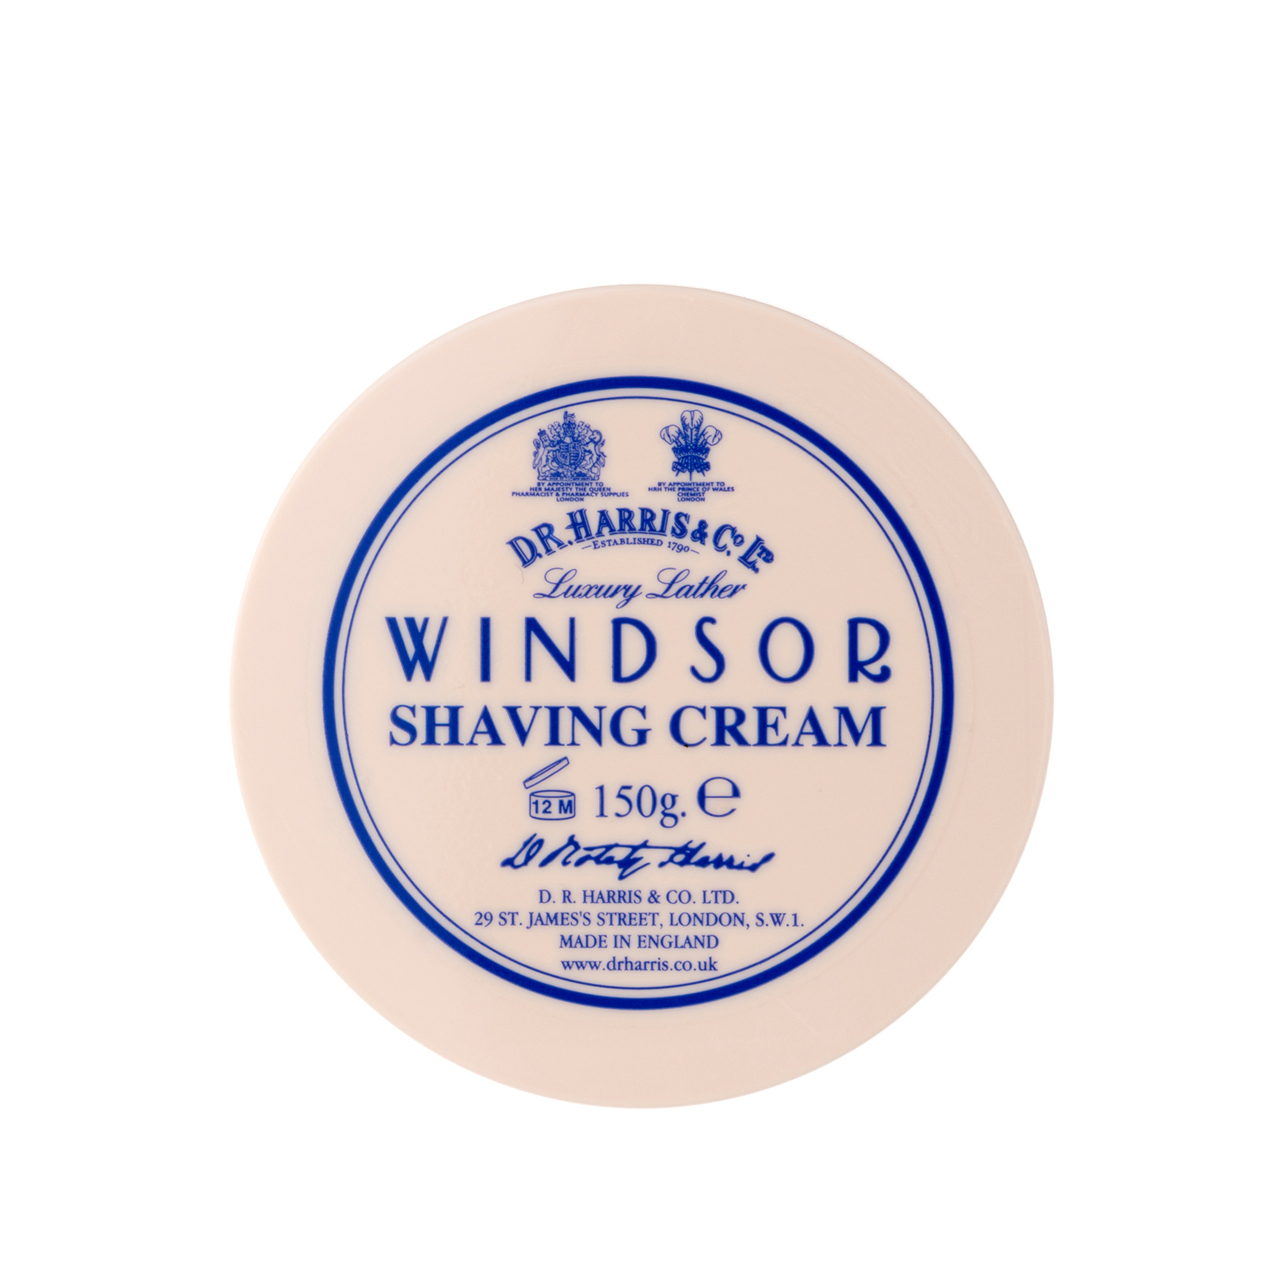 Windsor - Shaving Cream Bowl